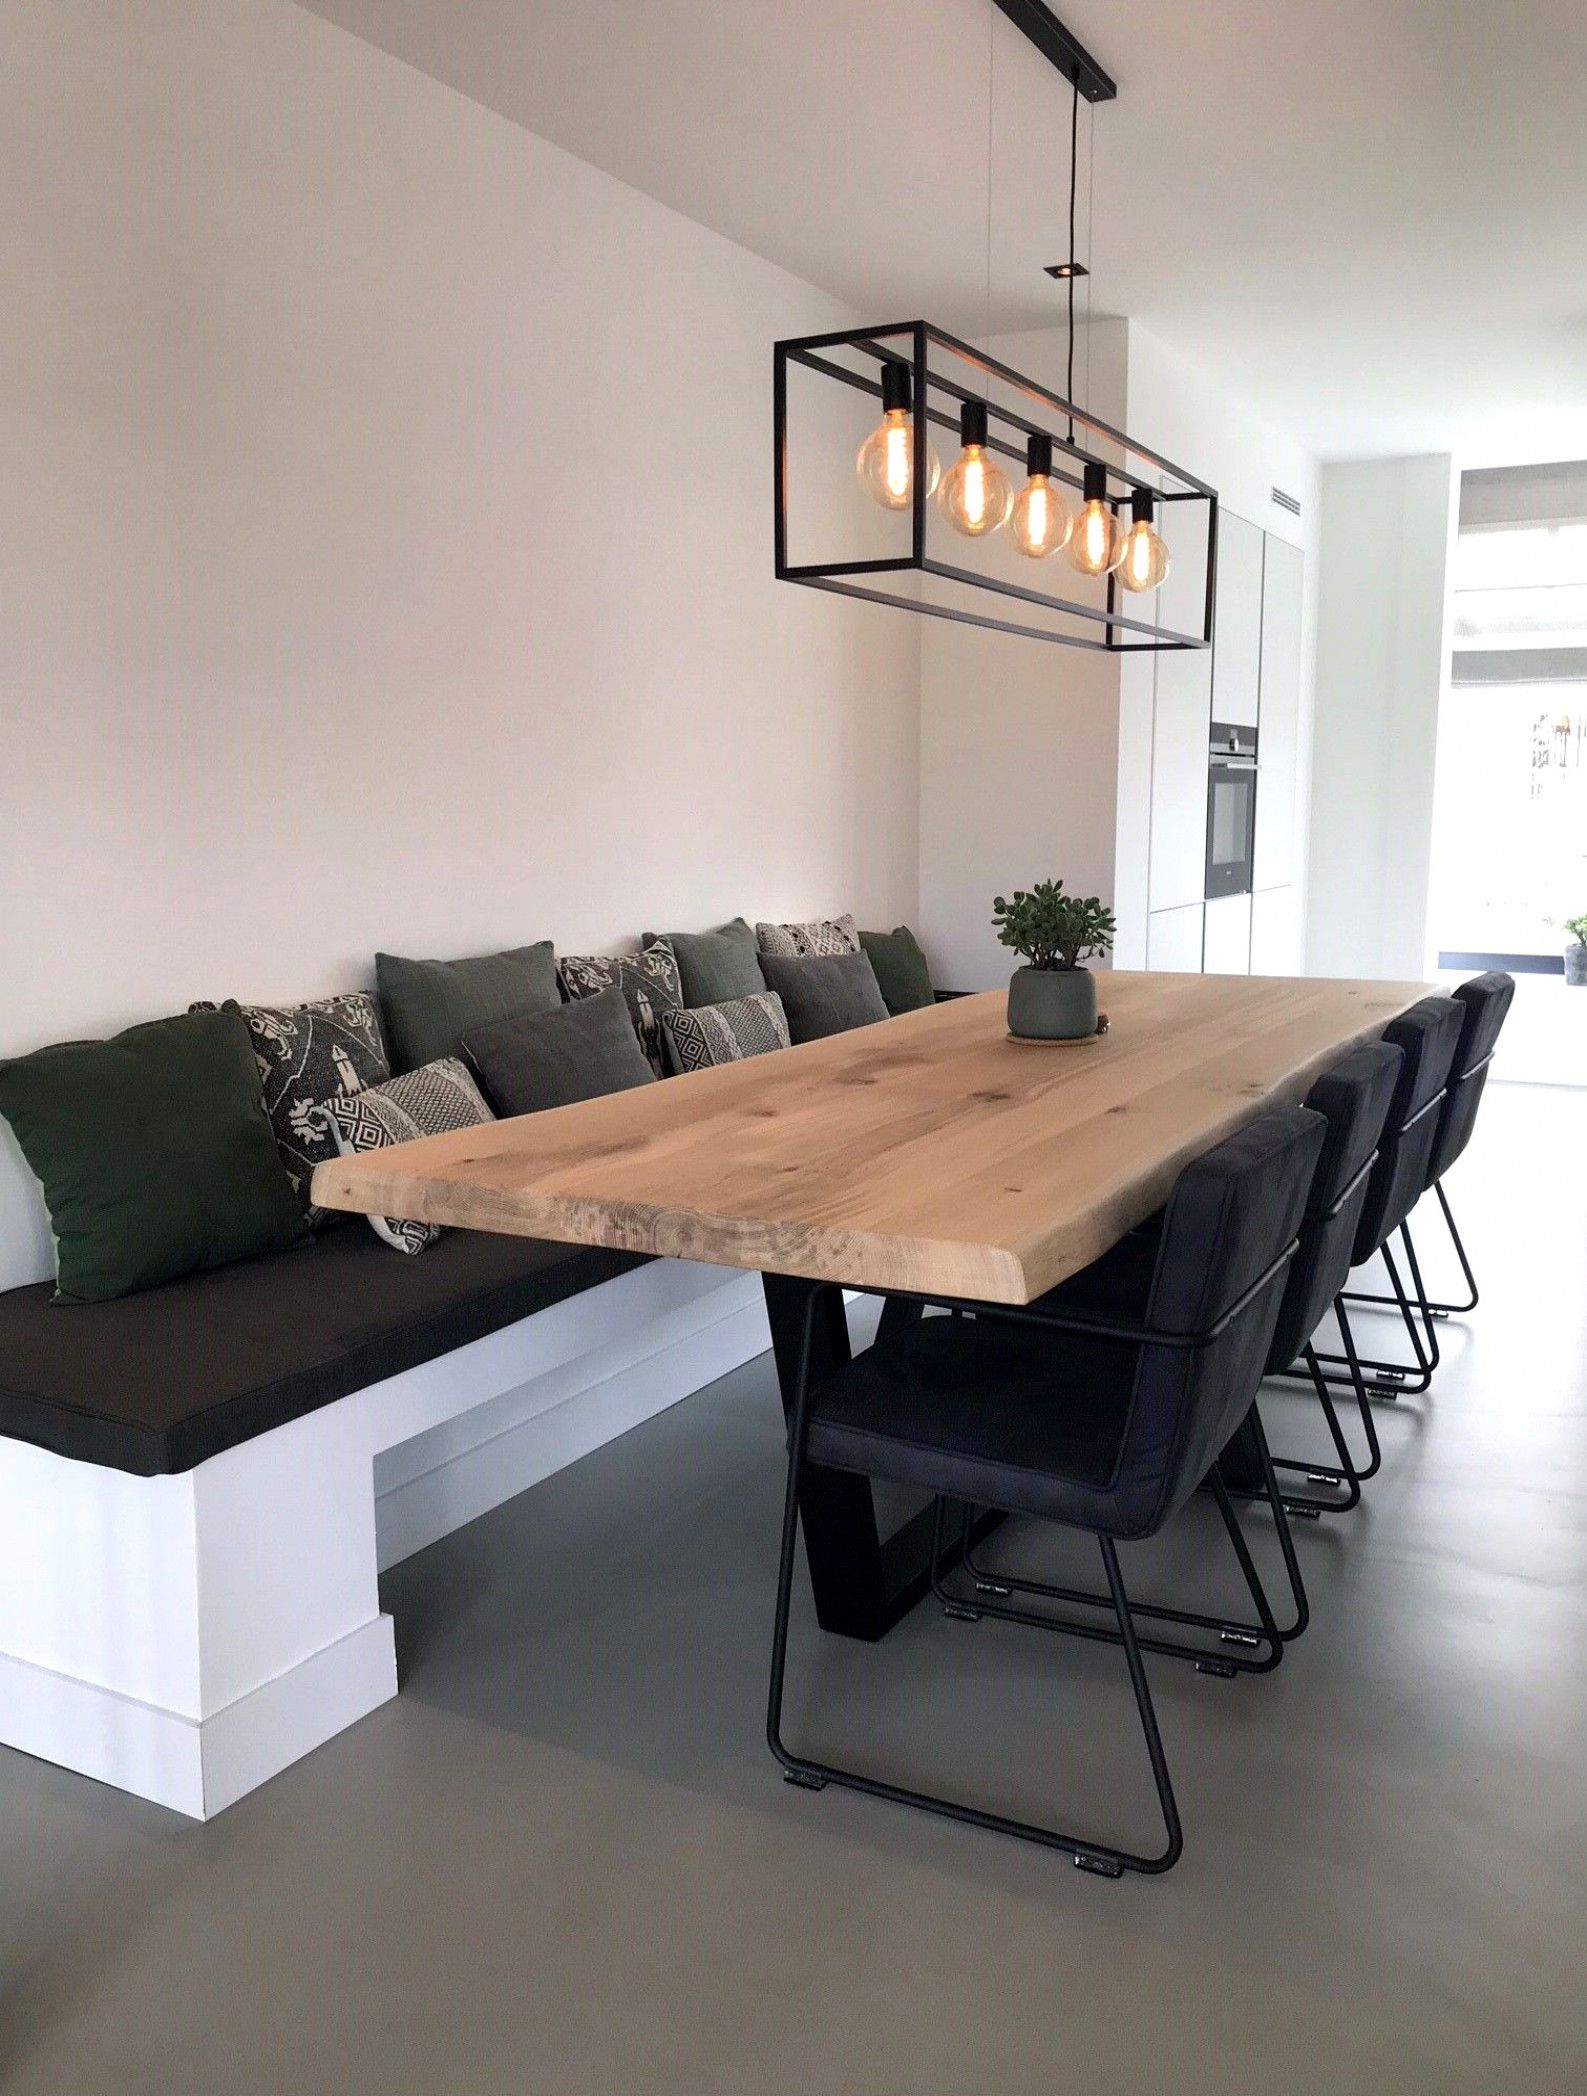 Pin By Masa Tislar On House Beautiful Dining Rooms Dining Table With Bench Dining Room Decor Beautiful dining rooms houzz